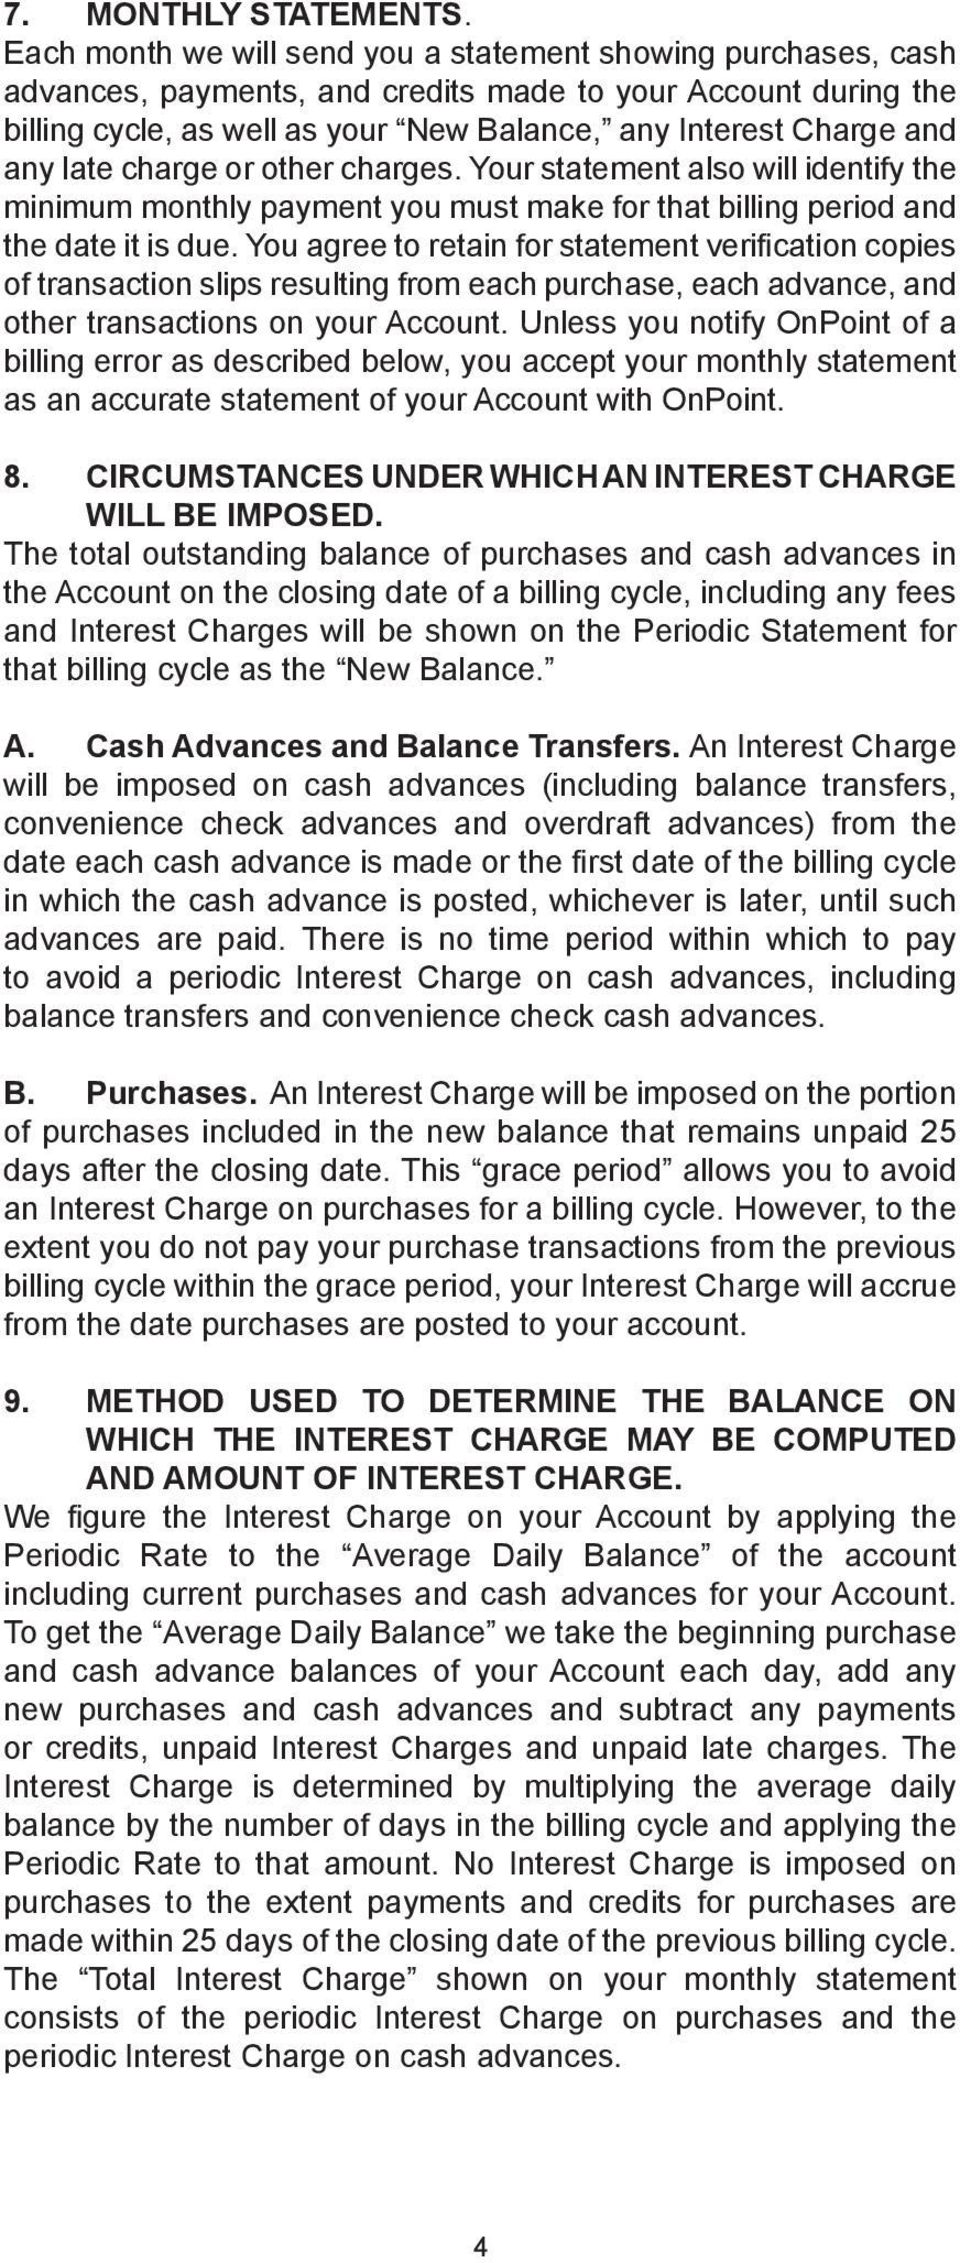 late charge or other charges. Your statement also will identify the minimum monthly payment you must make for that billing period and the date it is due.